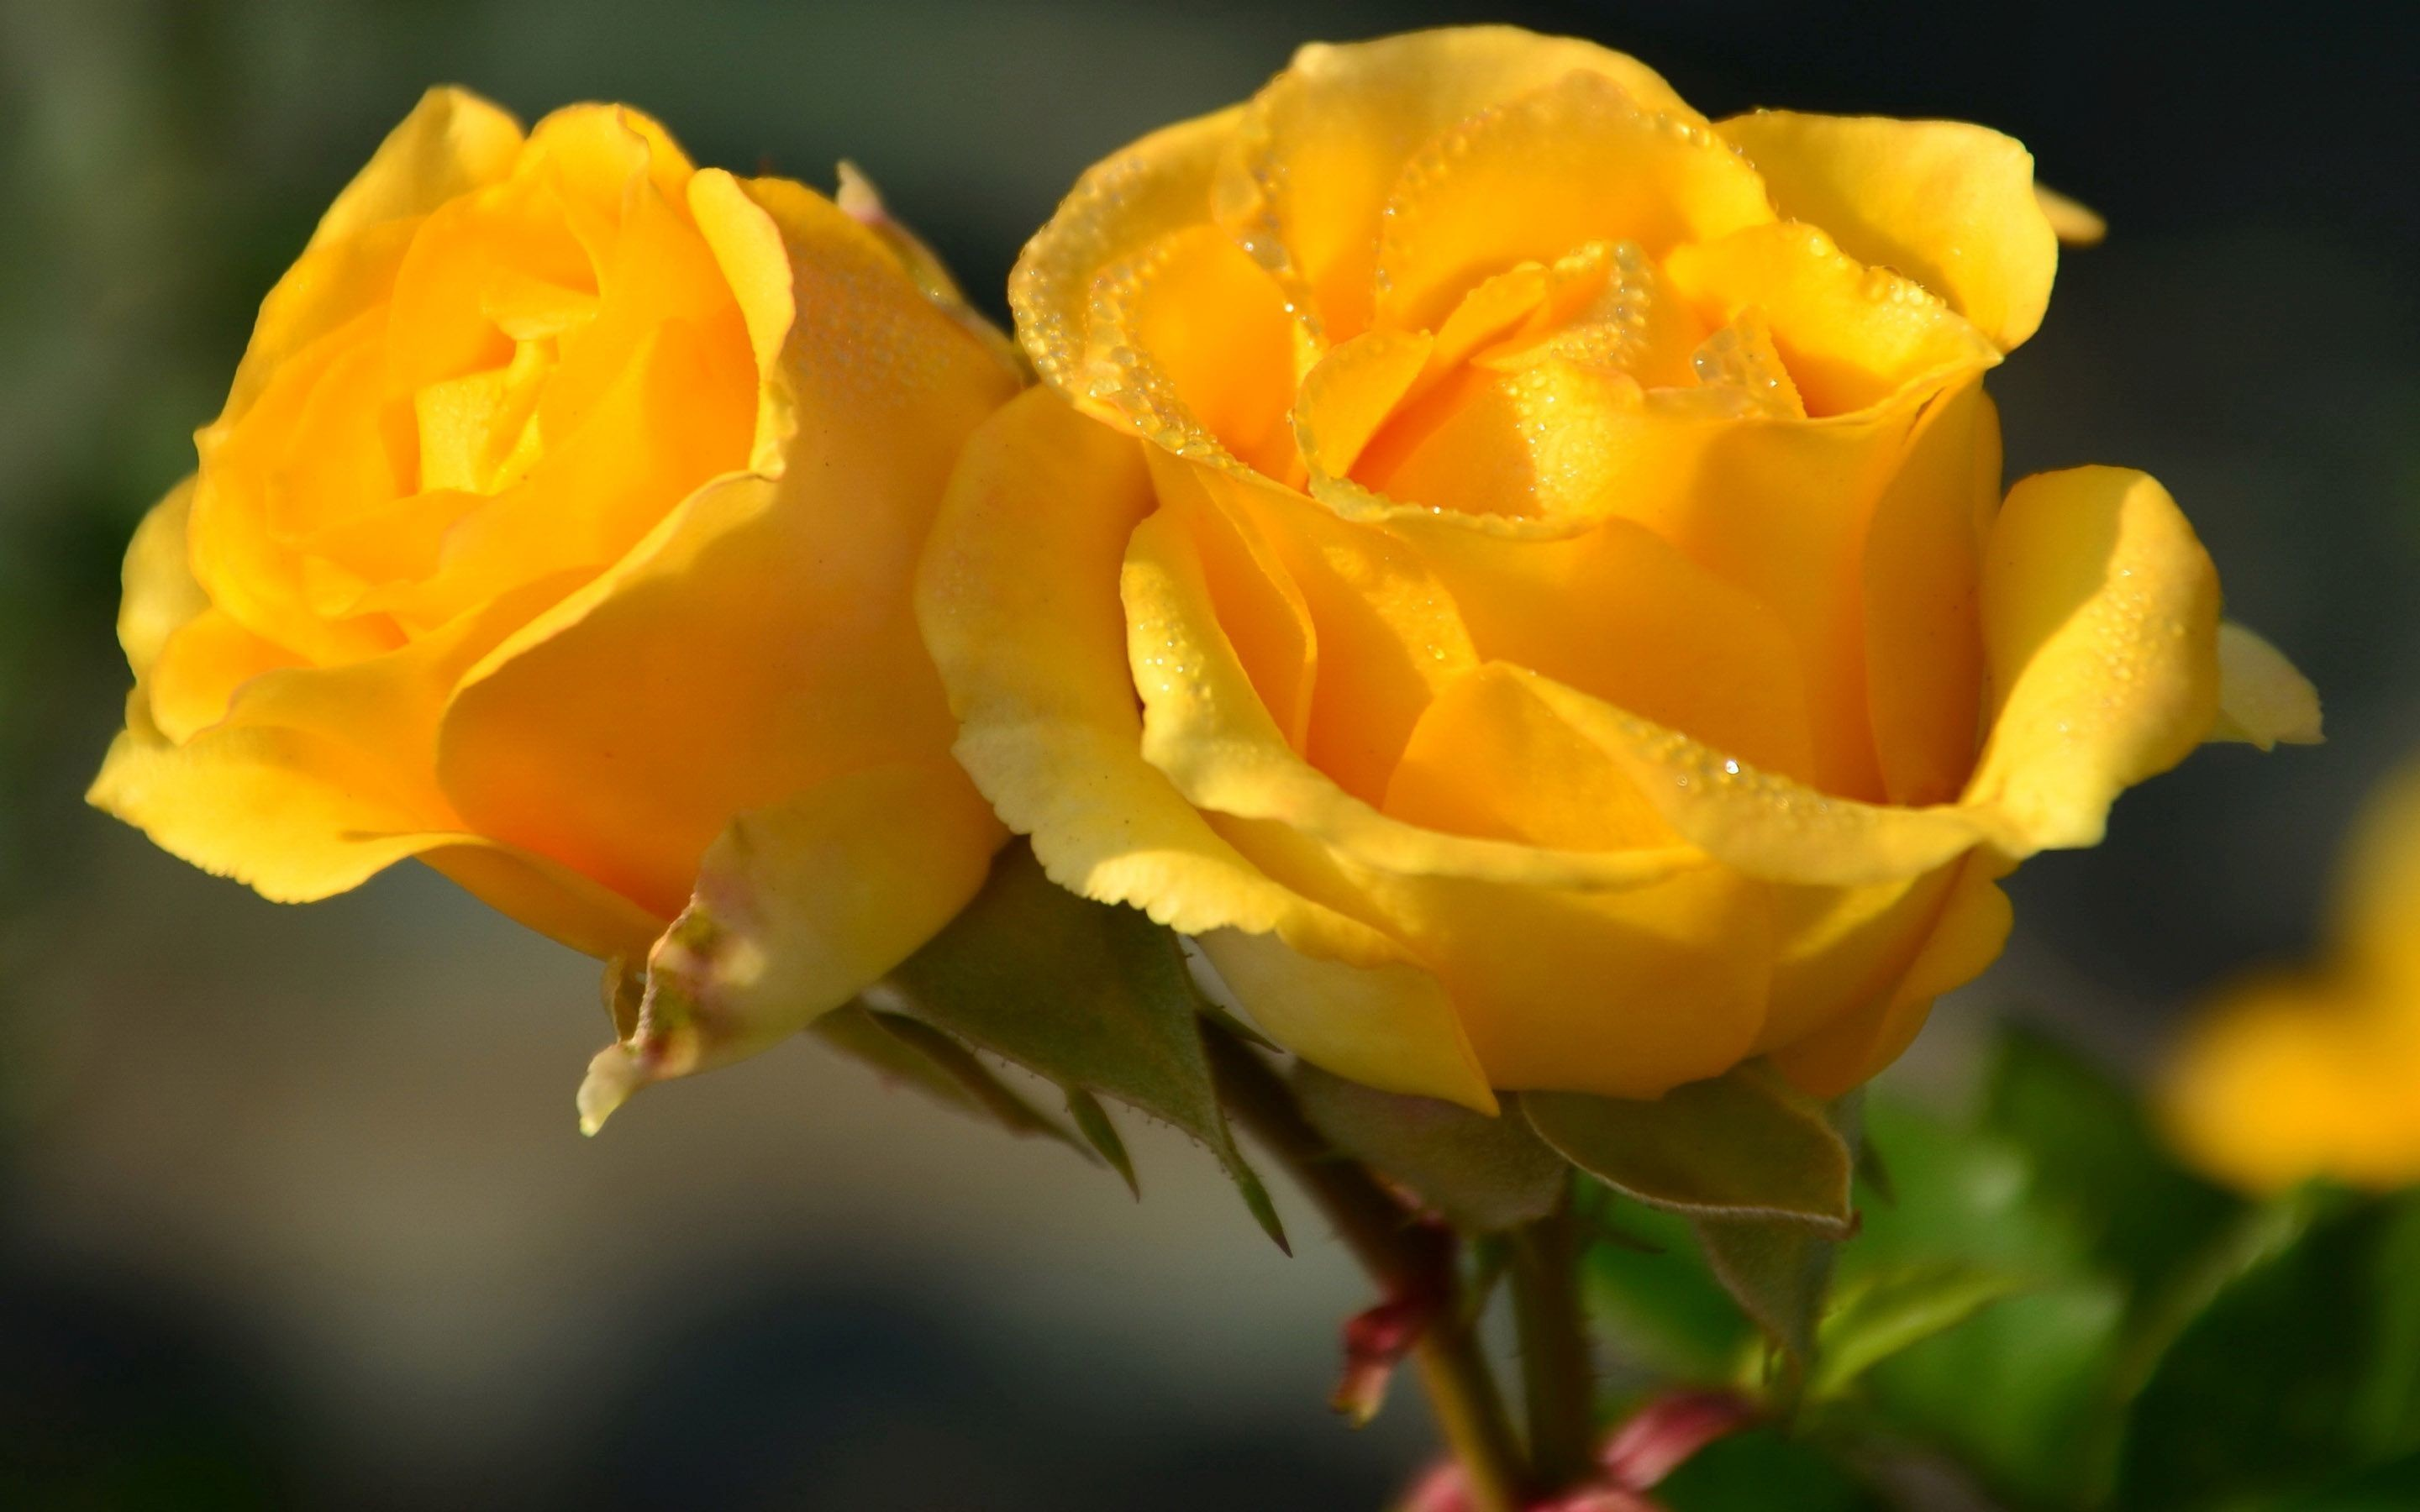 Yellow roses wallpaper 67 images - Yellow rose images hd ...